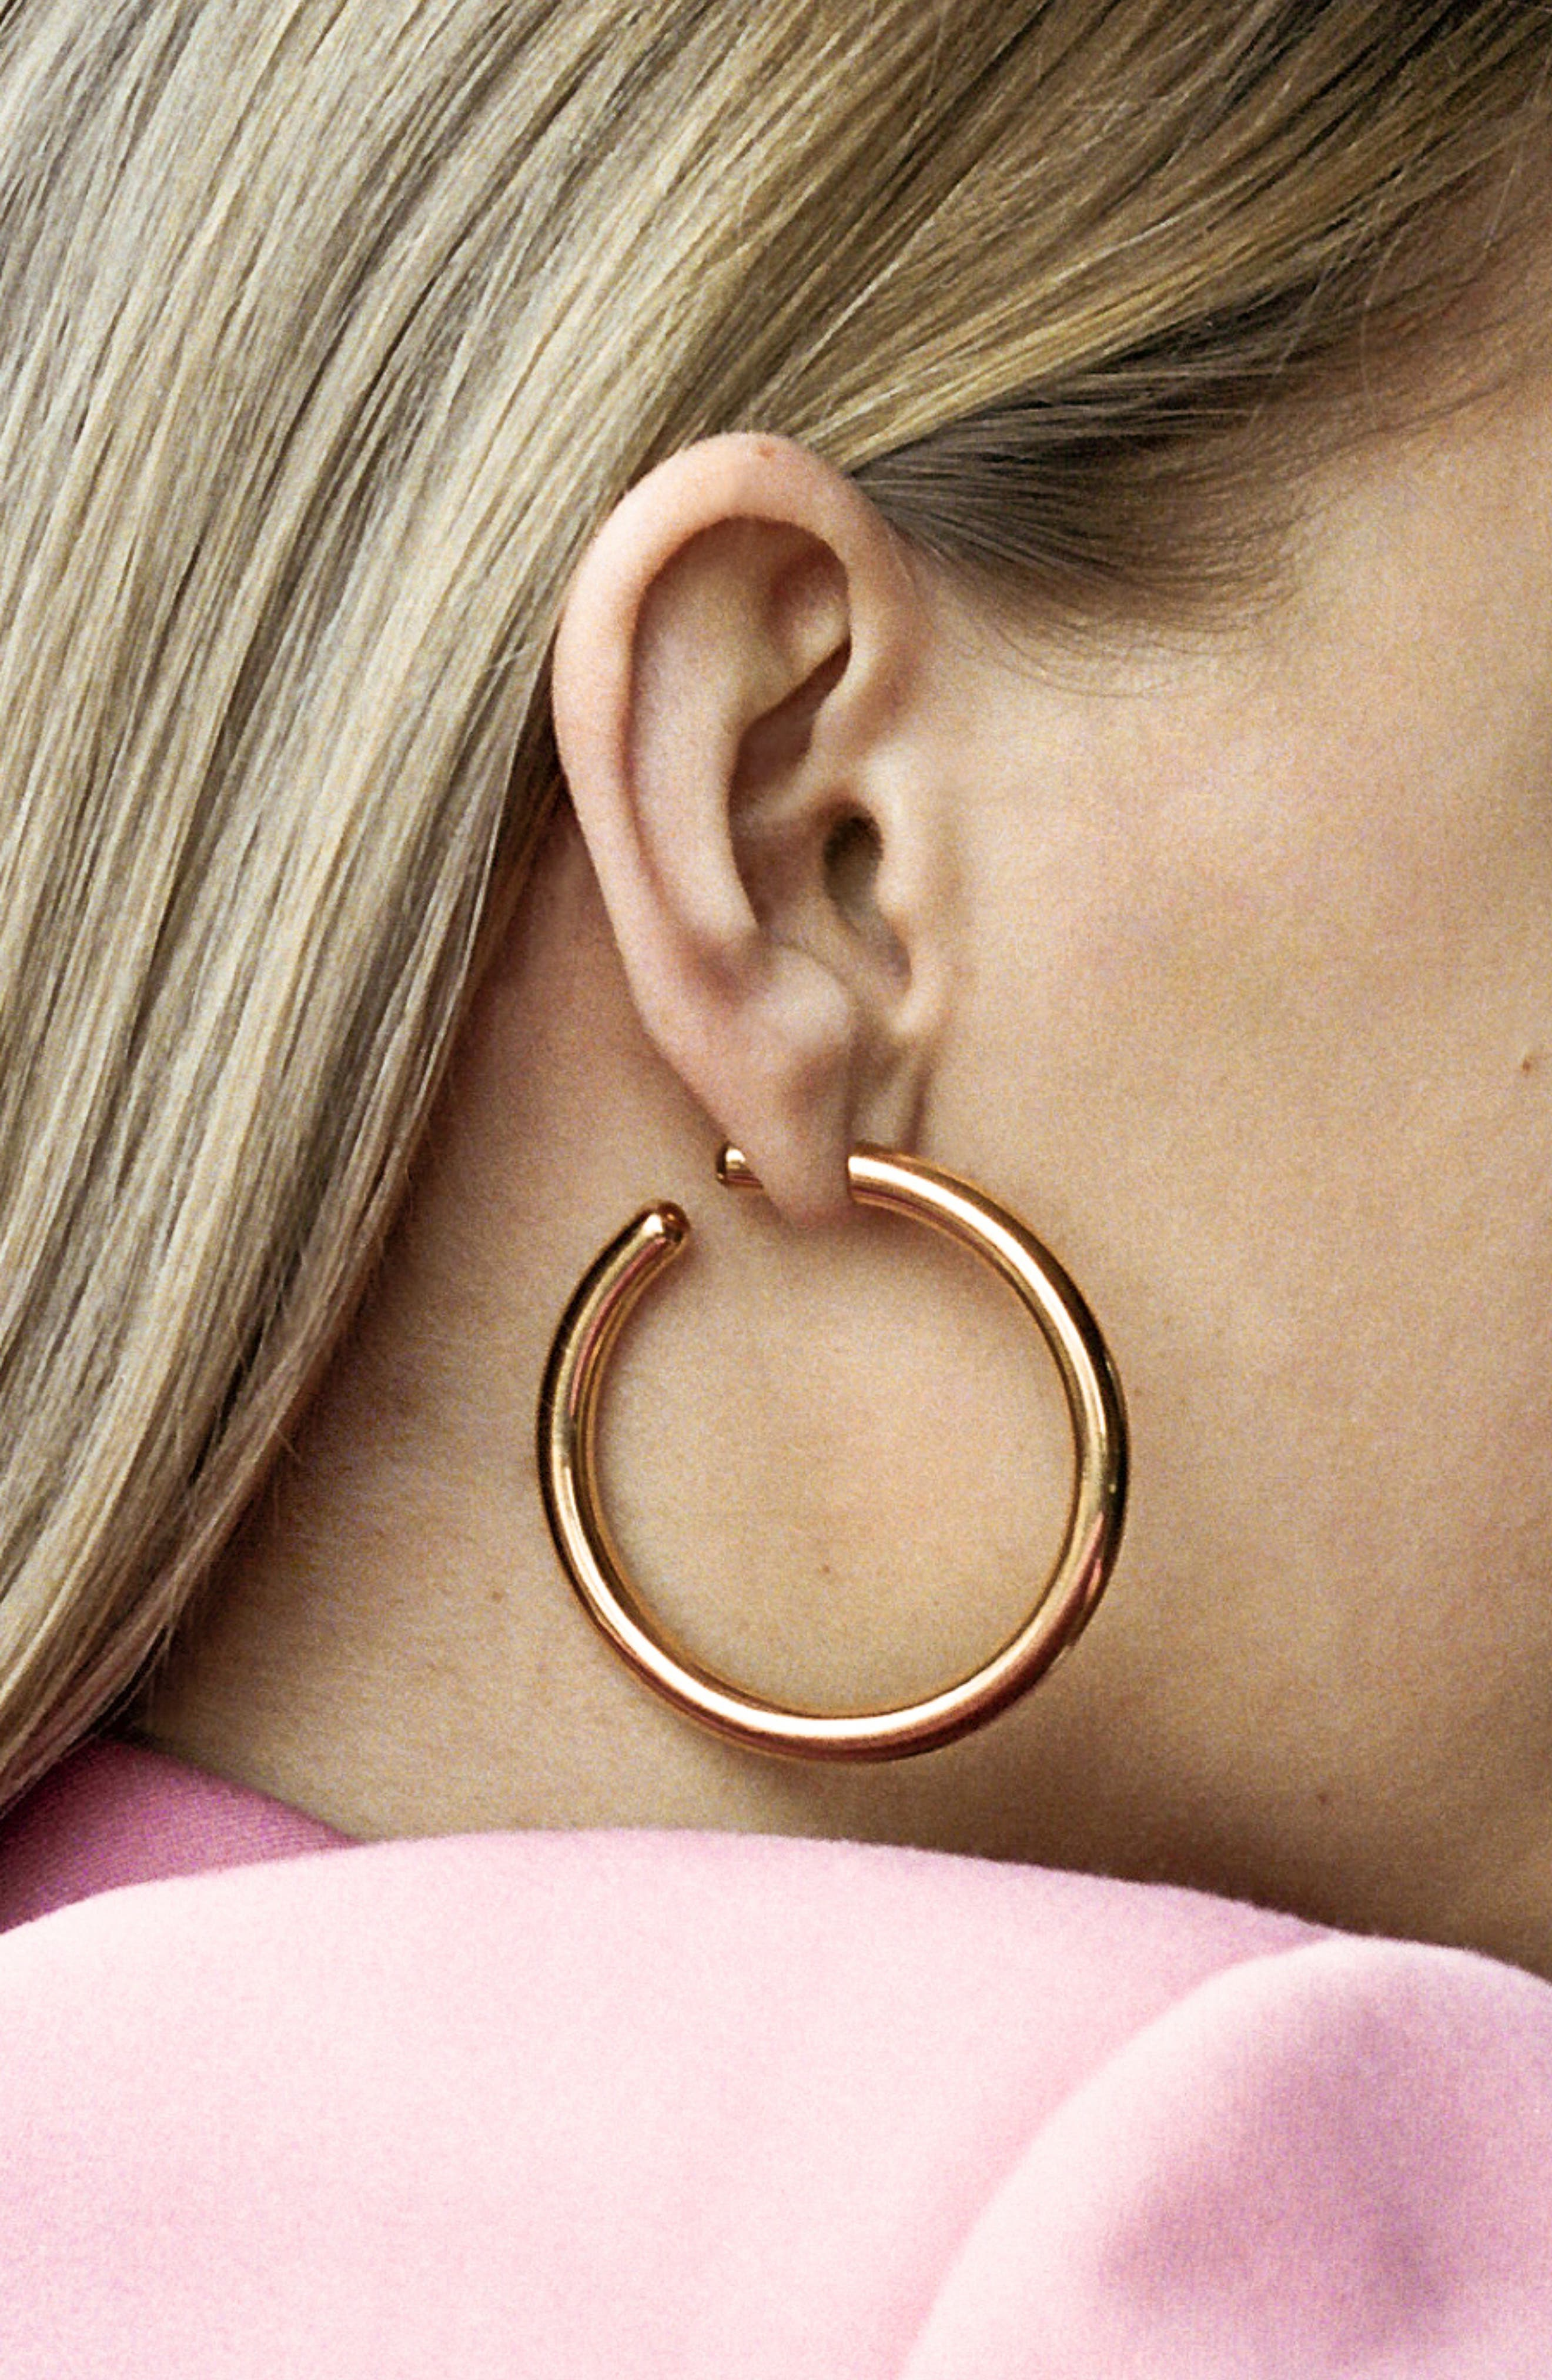 Heroes Hoop Earring,                             Alternate thumbnail 2, color,                             HIGH POLISHED GOLD